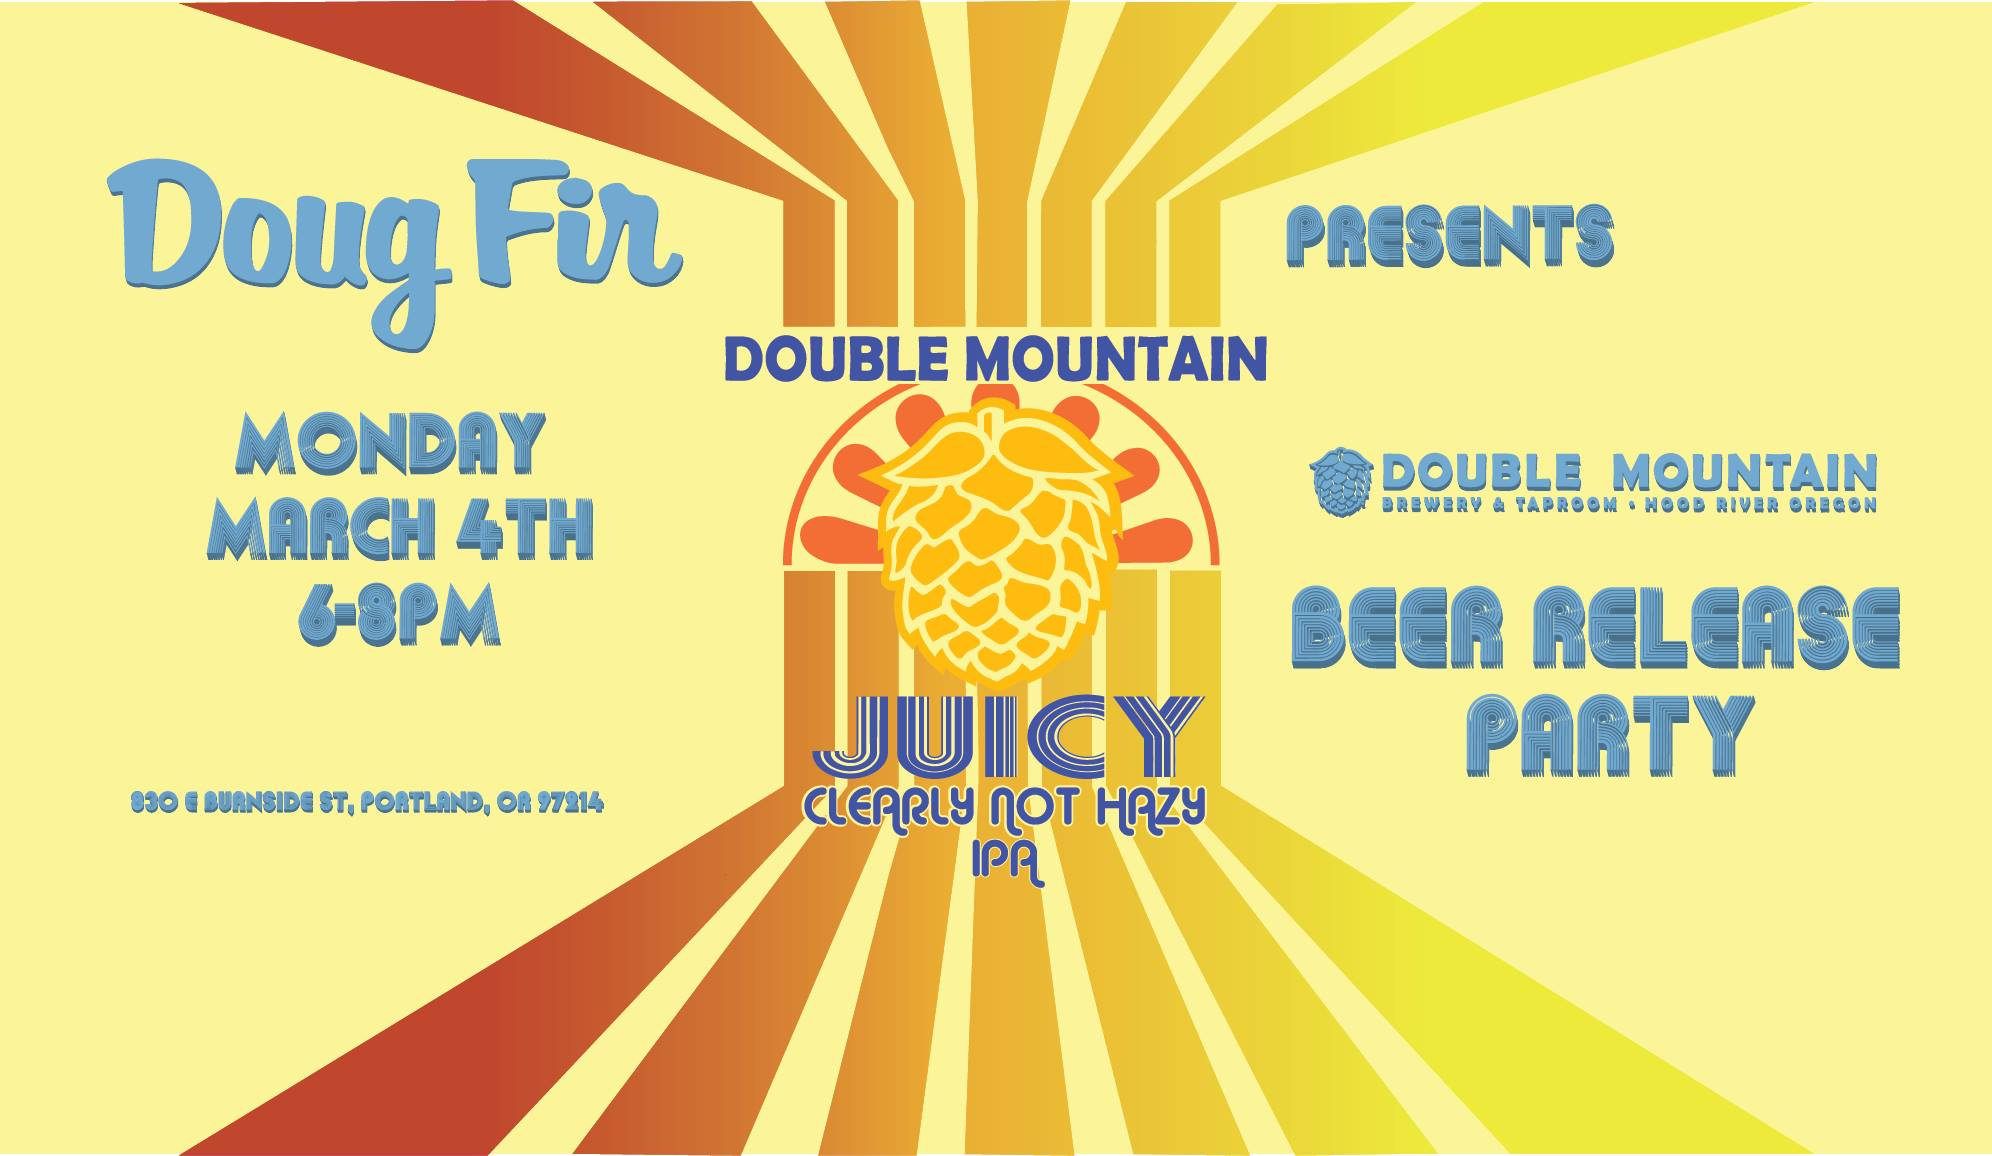 Double Mountain Juicy, Clearly Not Hazy IPA Release Party at Doug Fir Lounge